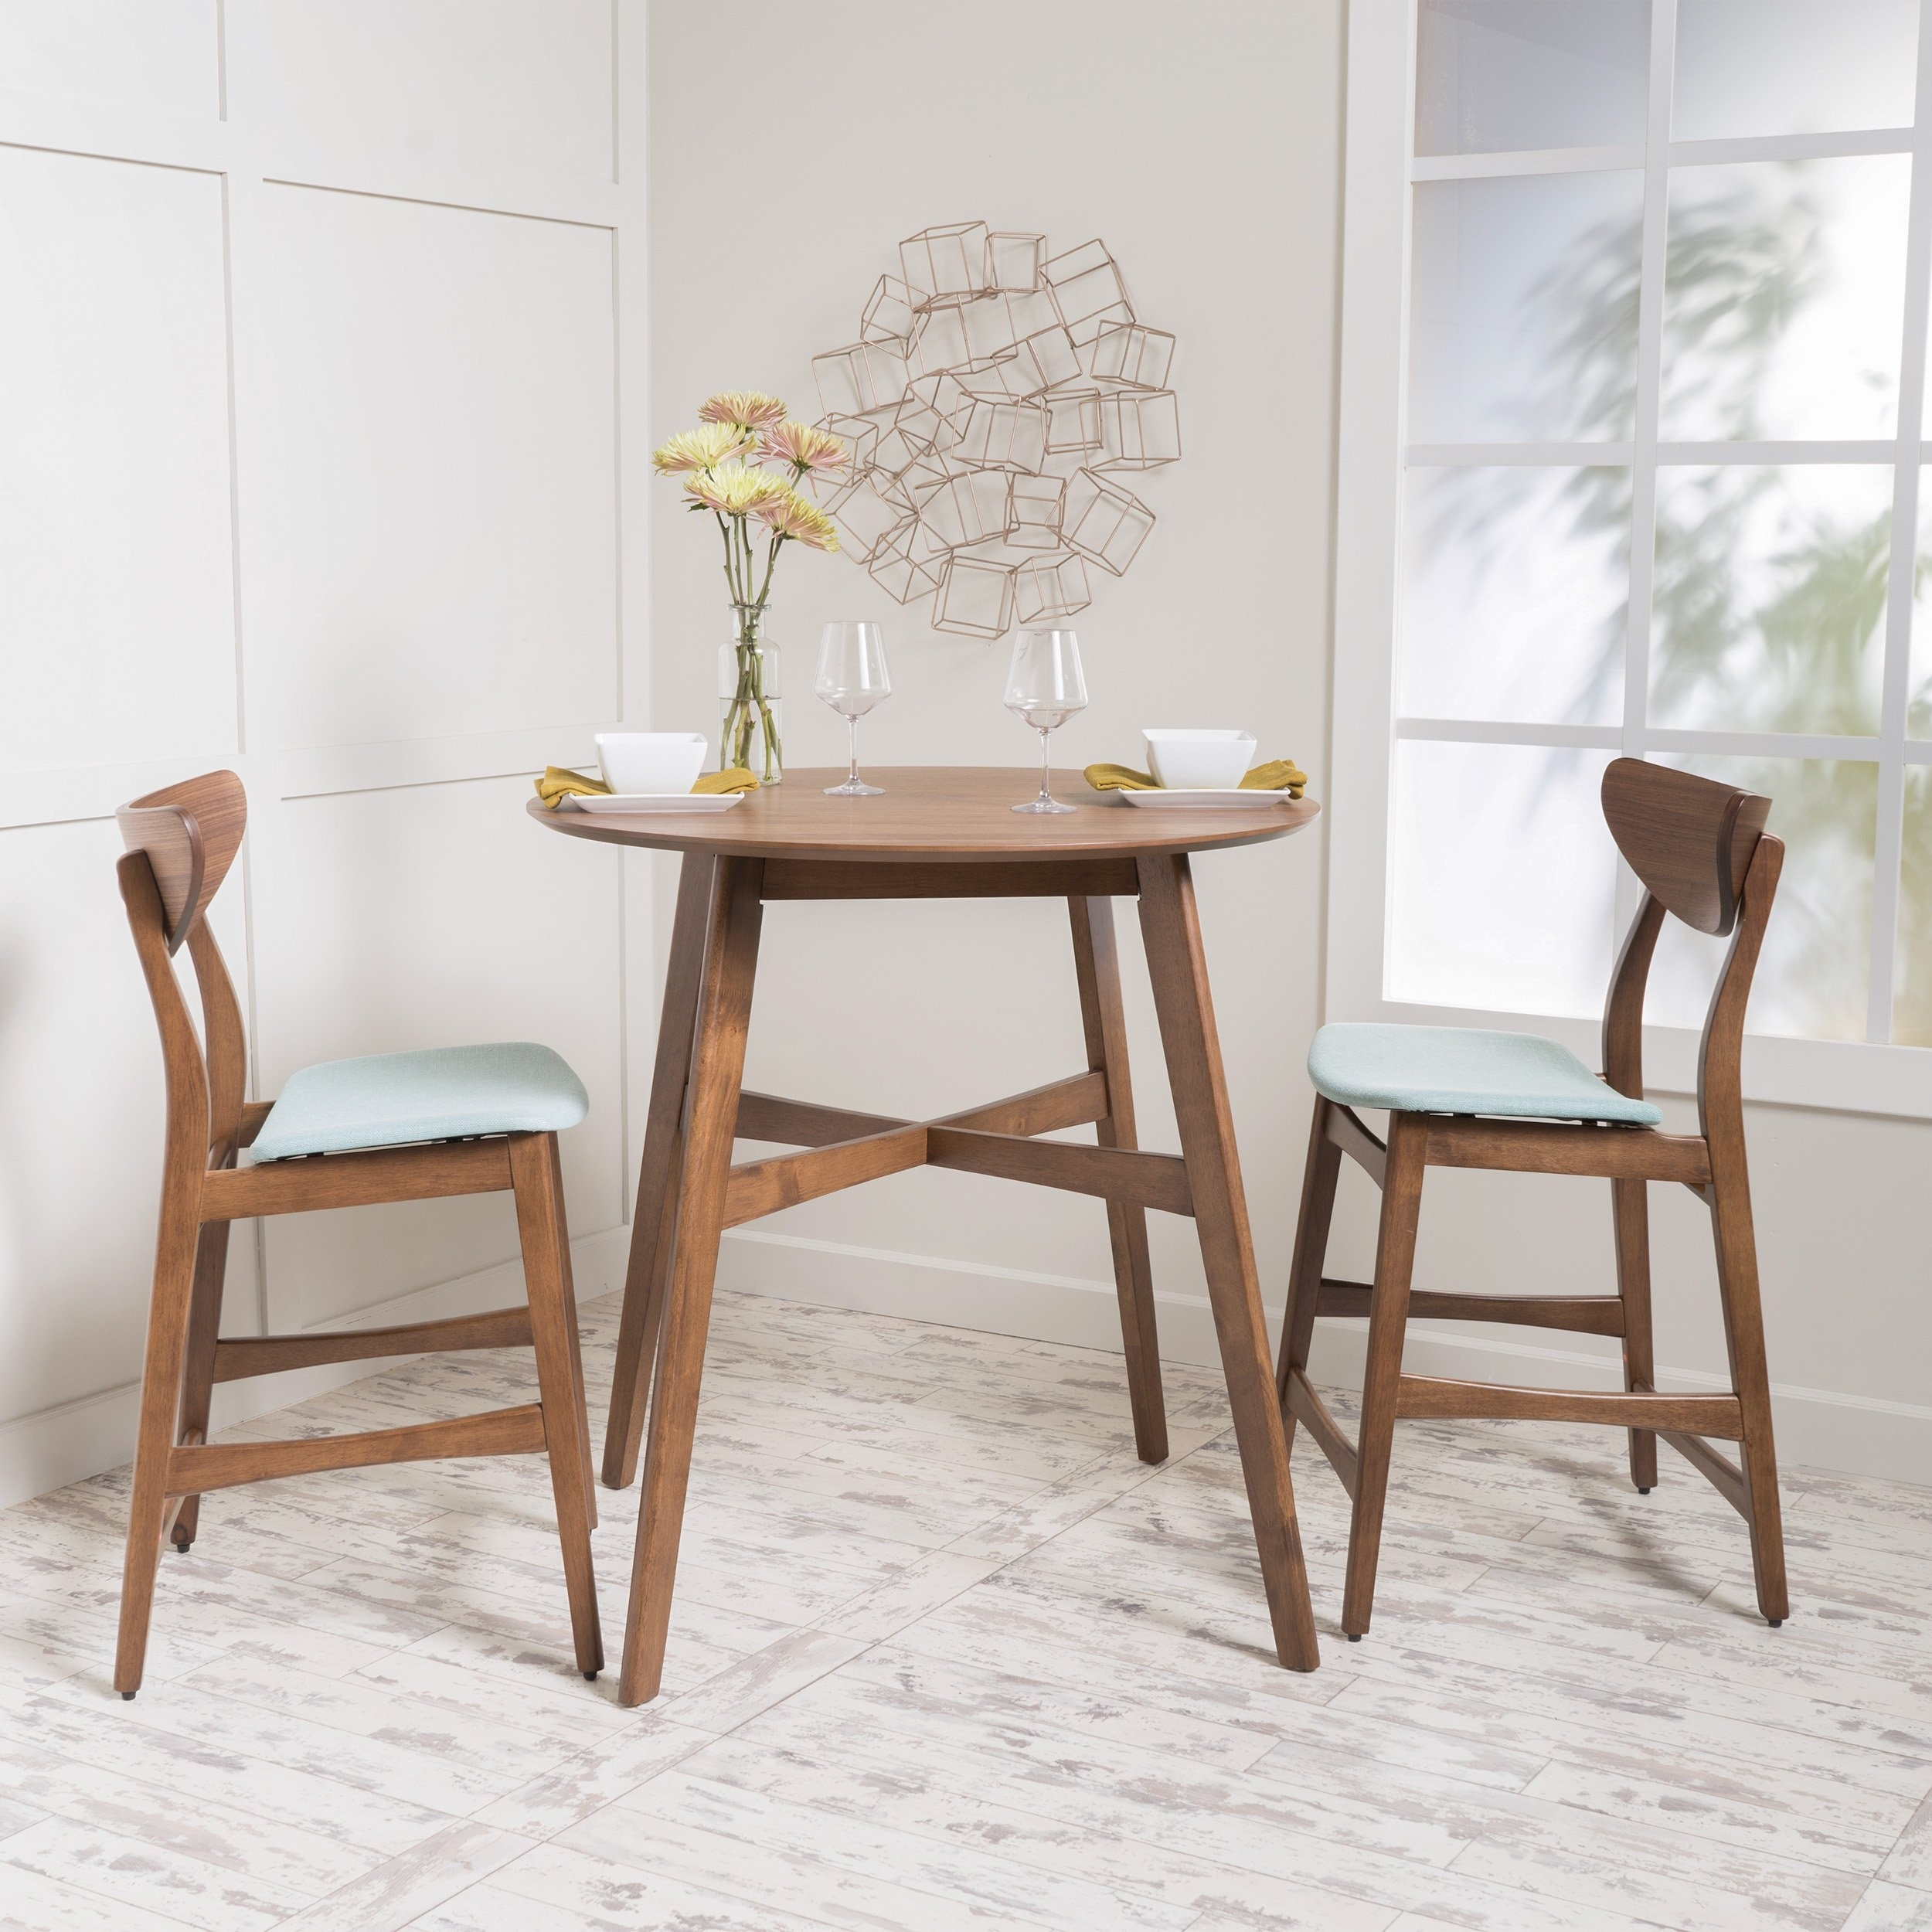 Shop Gavin 3 Piece Wood Counter Height Round Dining Set Intended For Best And Newest Gavin Dining Tables (View 12 of 20)